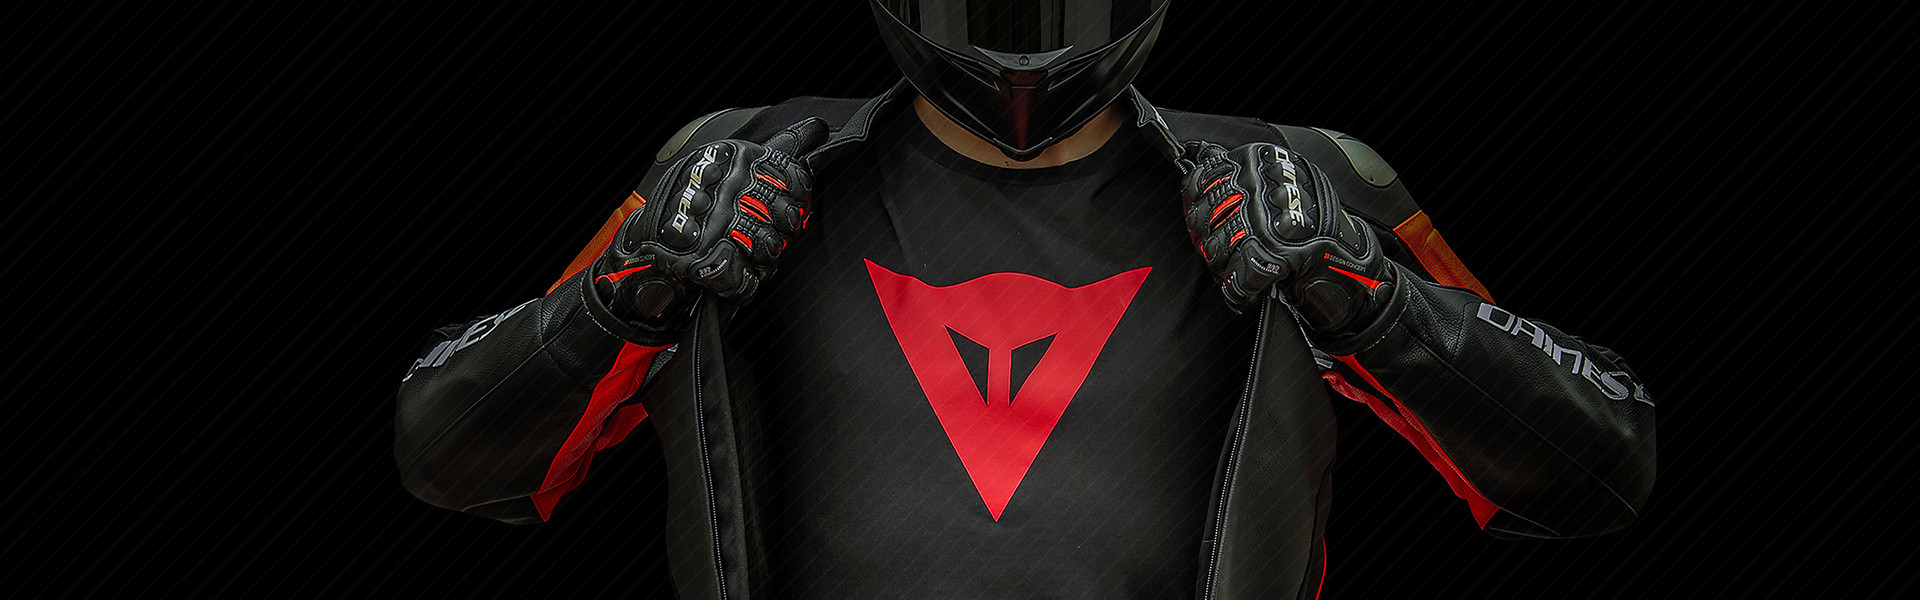 Dainese: Mission Safety